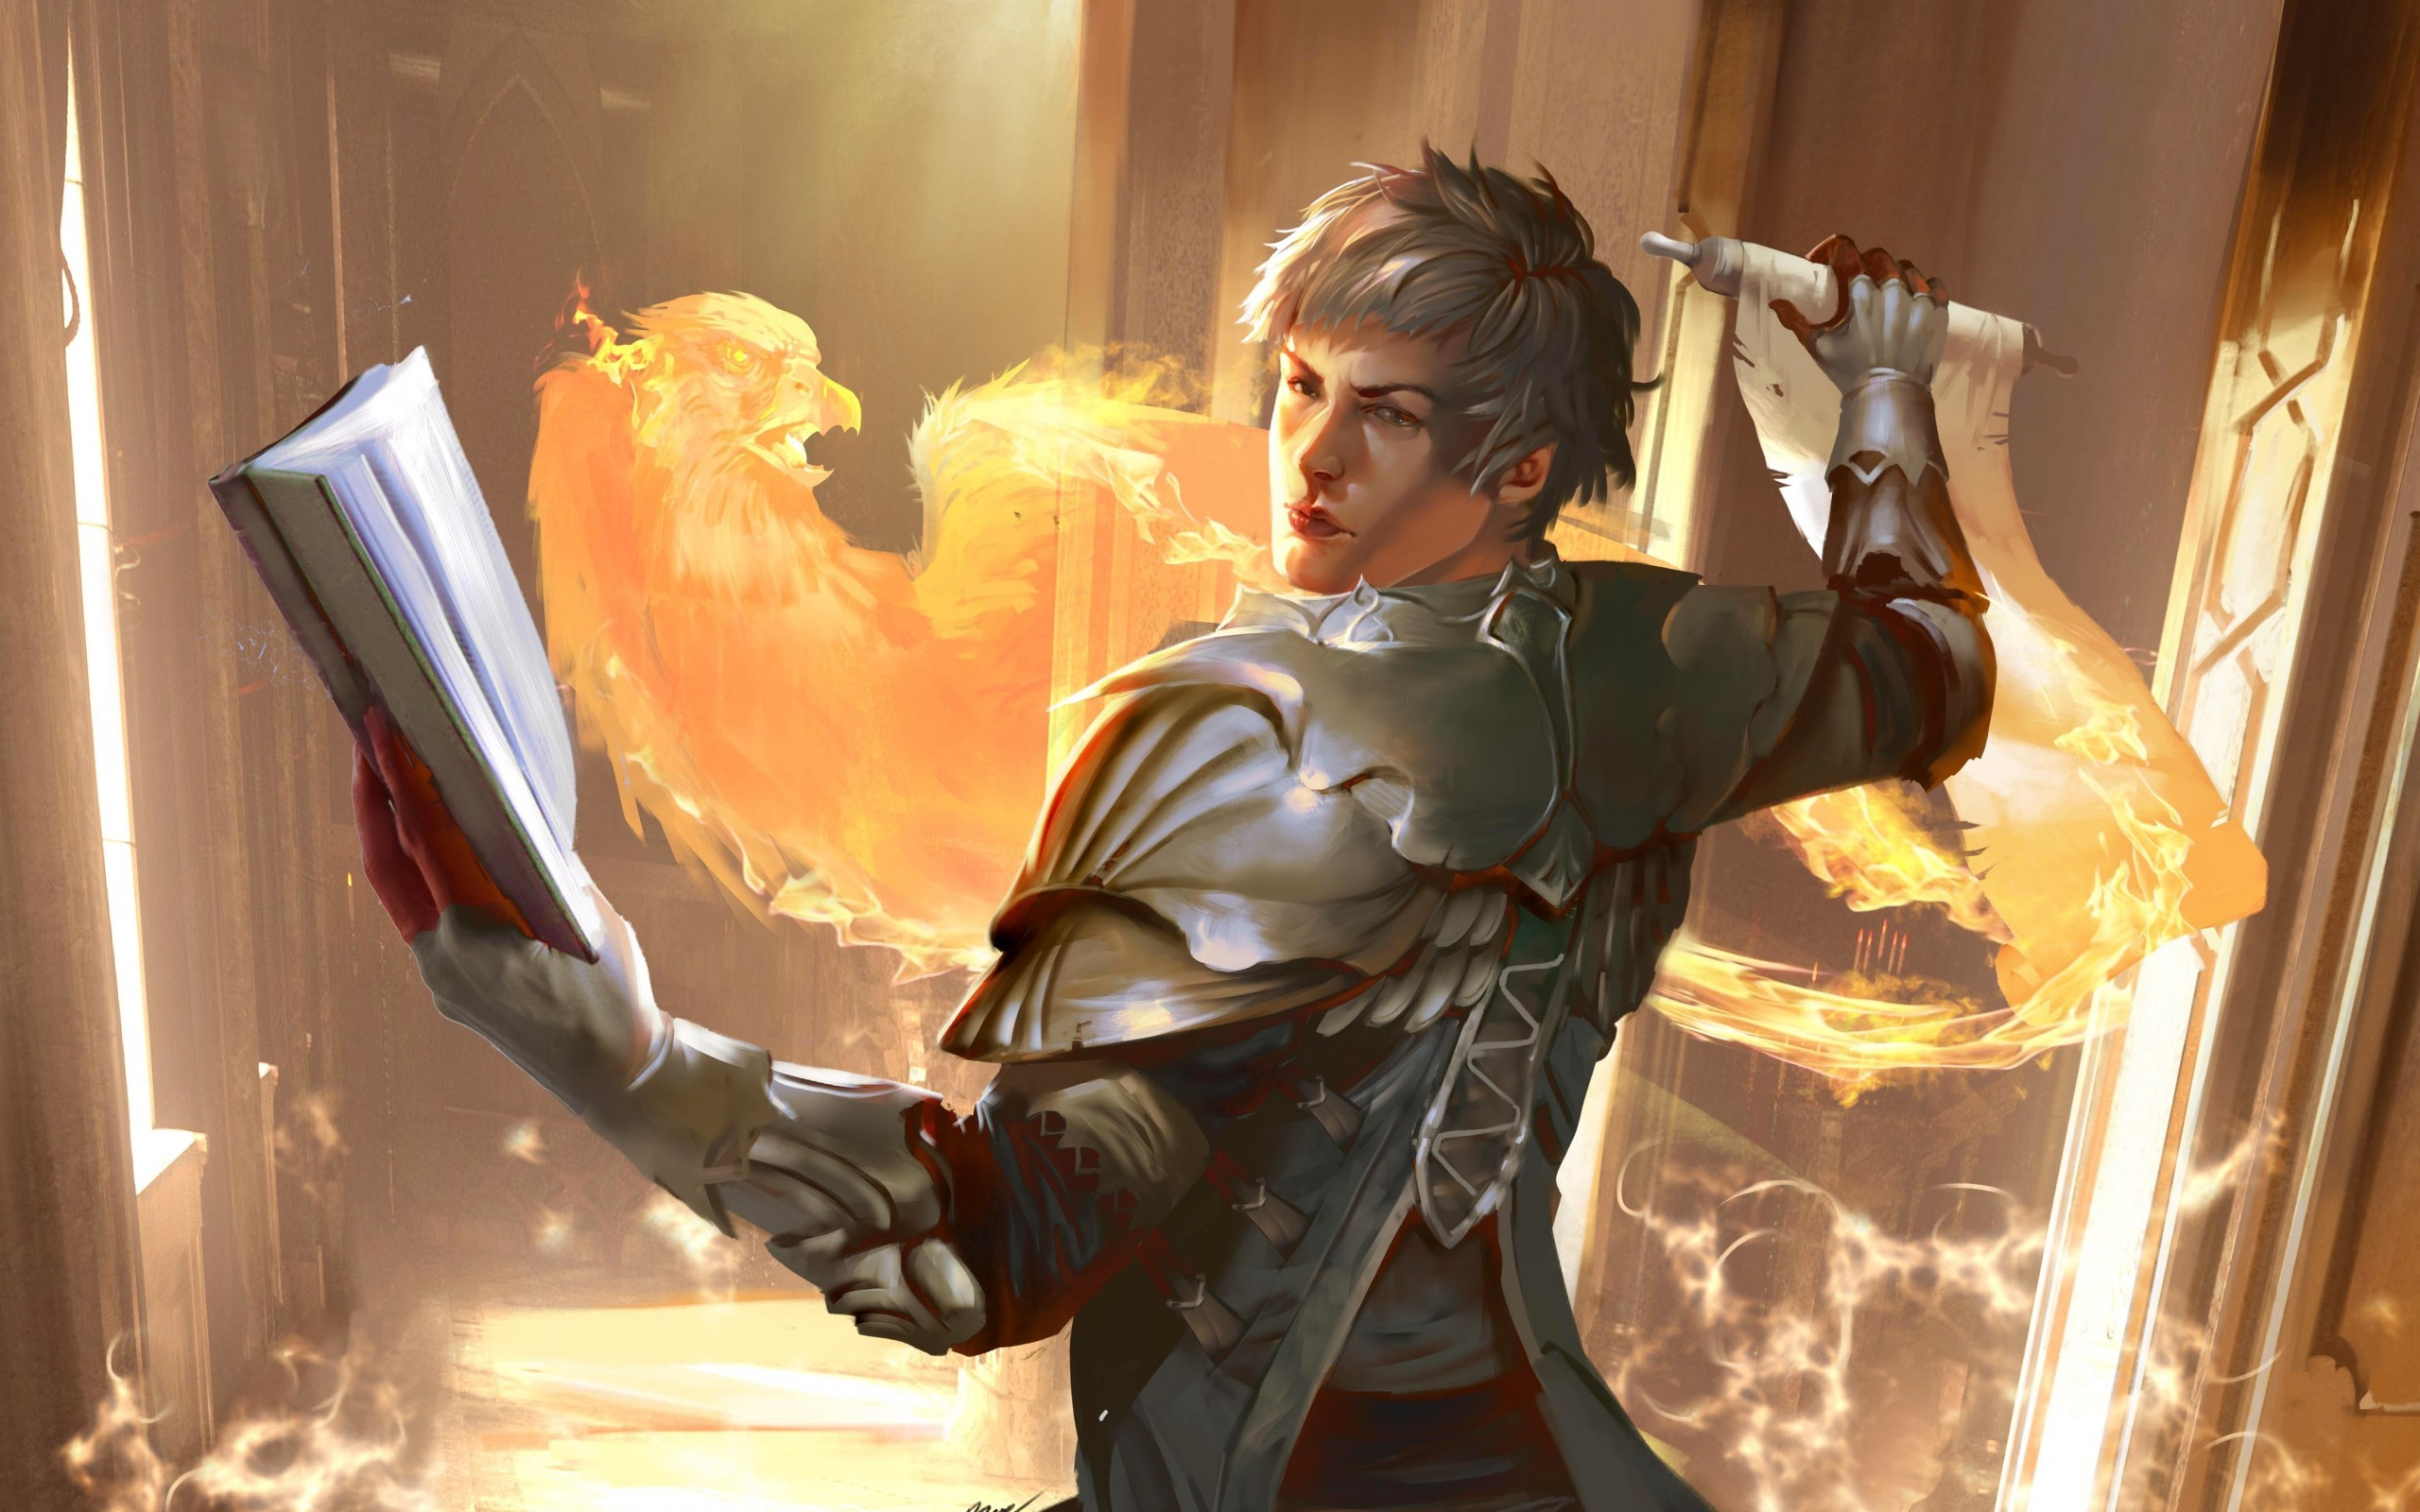 Download 2560x1600 Fantasy Man Phoenix Spellbook Armor Flame 2560x1600